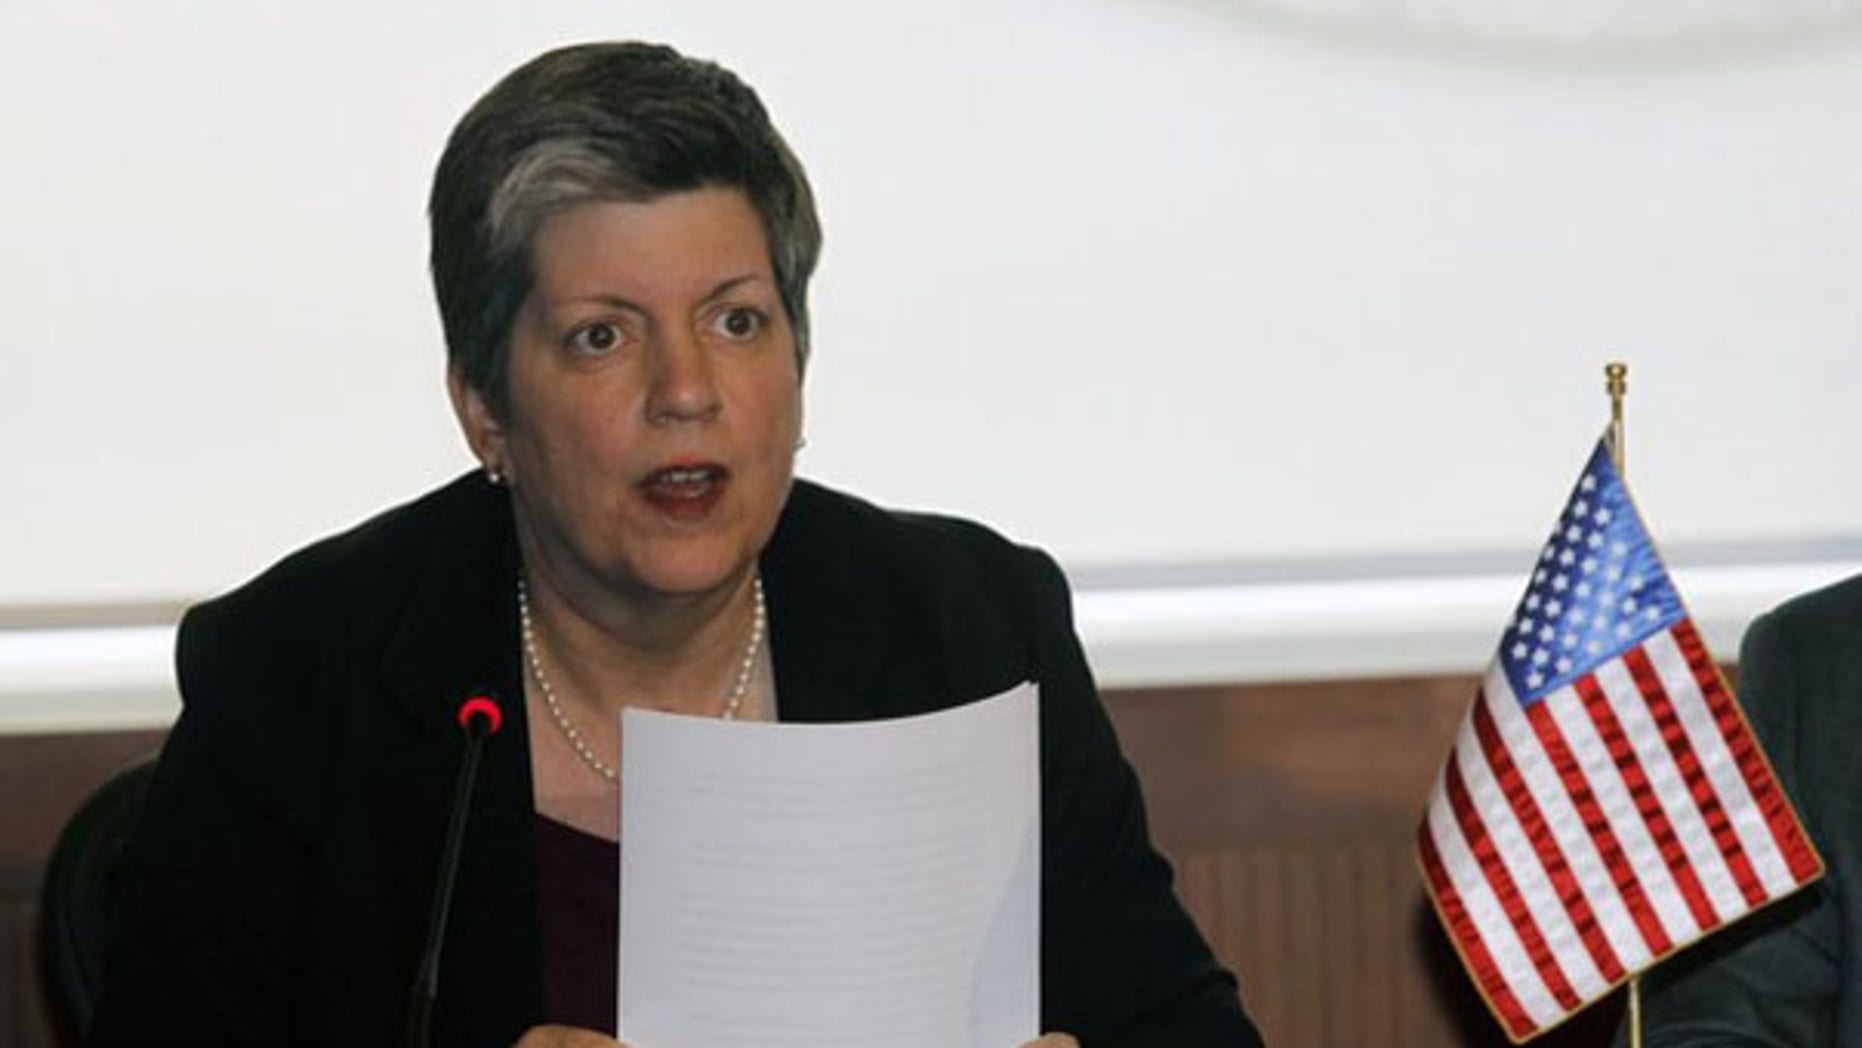 Department of Homeland Security Secretary Janet Napolitano attends a meeting in Mexico City March 23. (Reuters Photo)